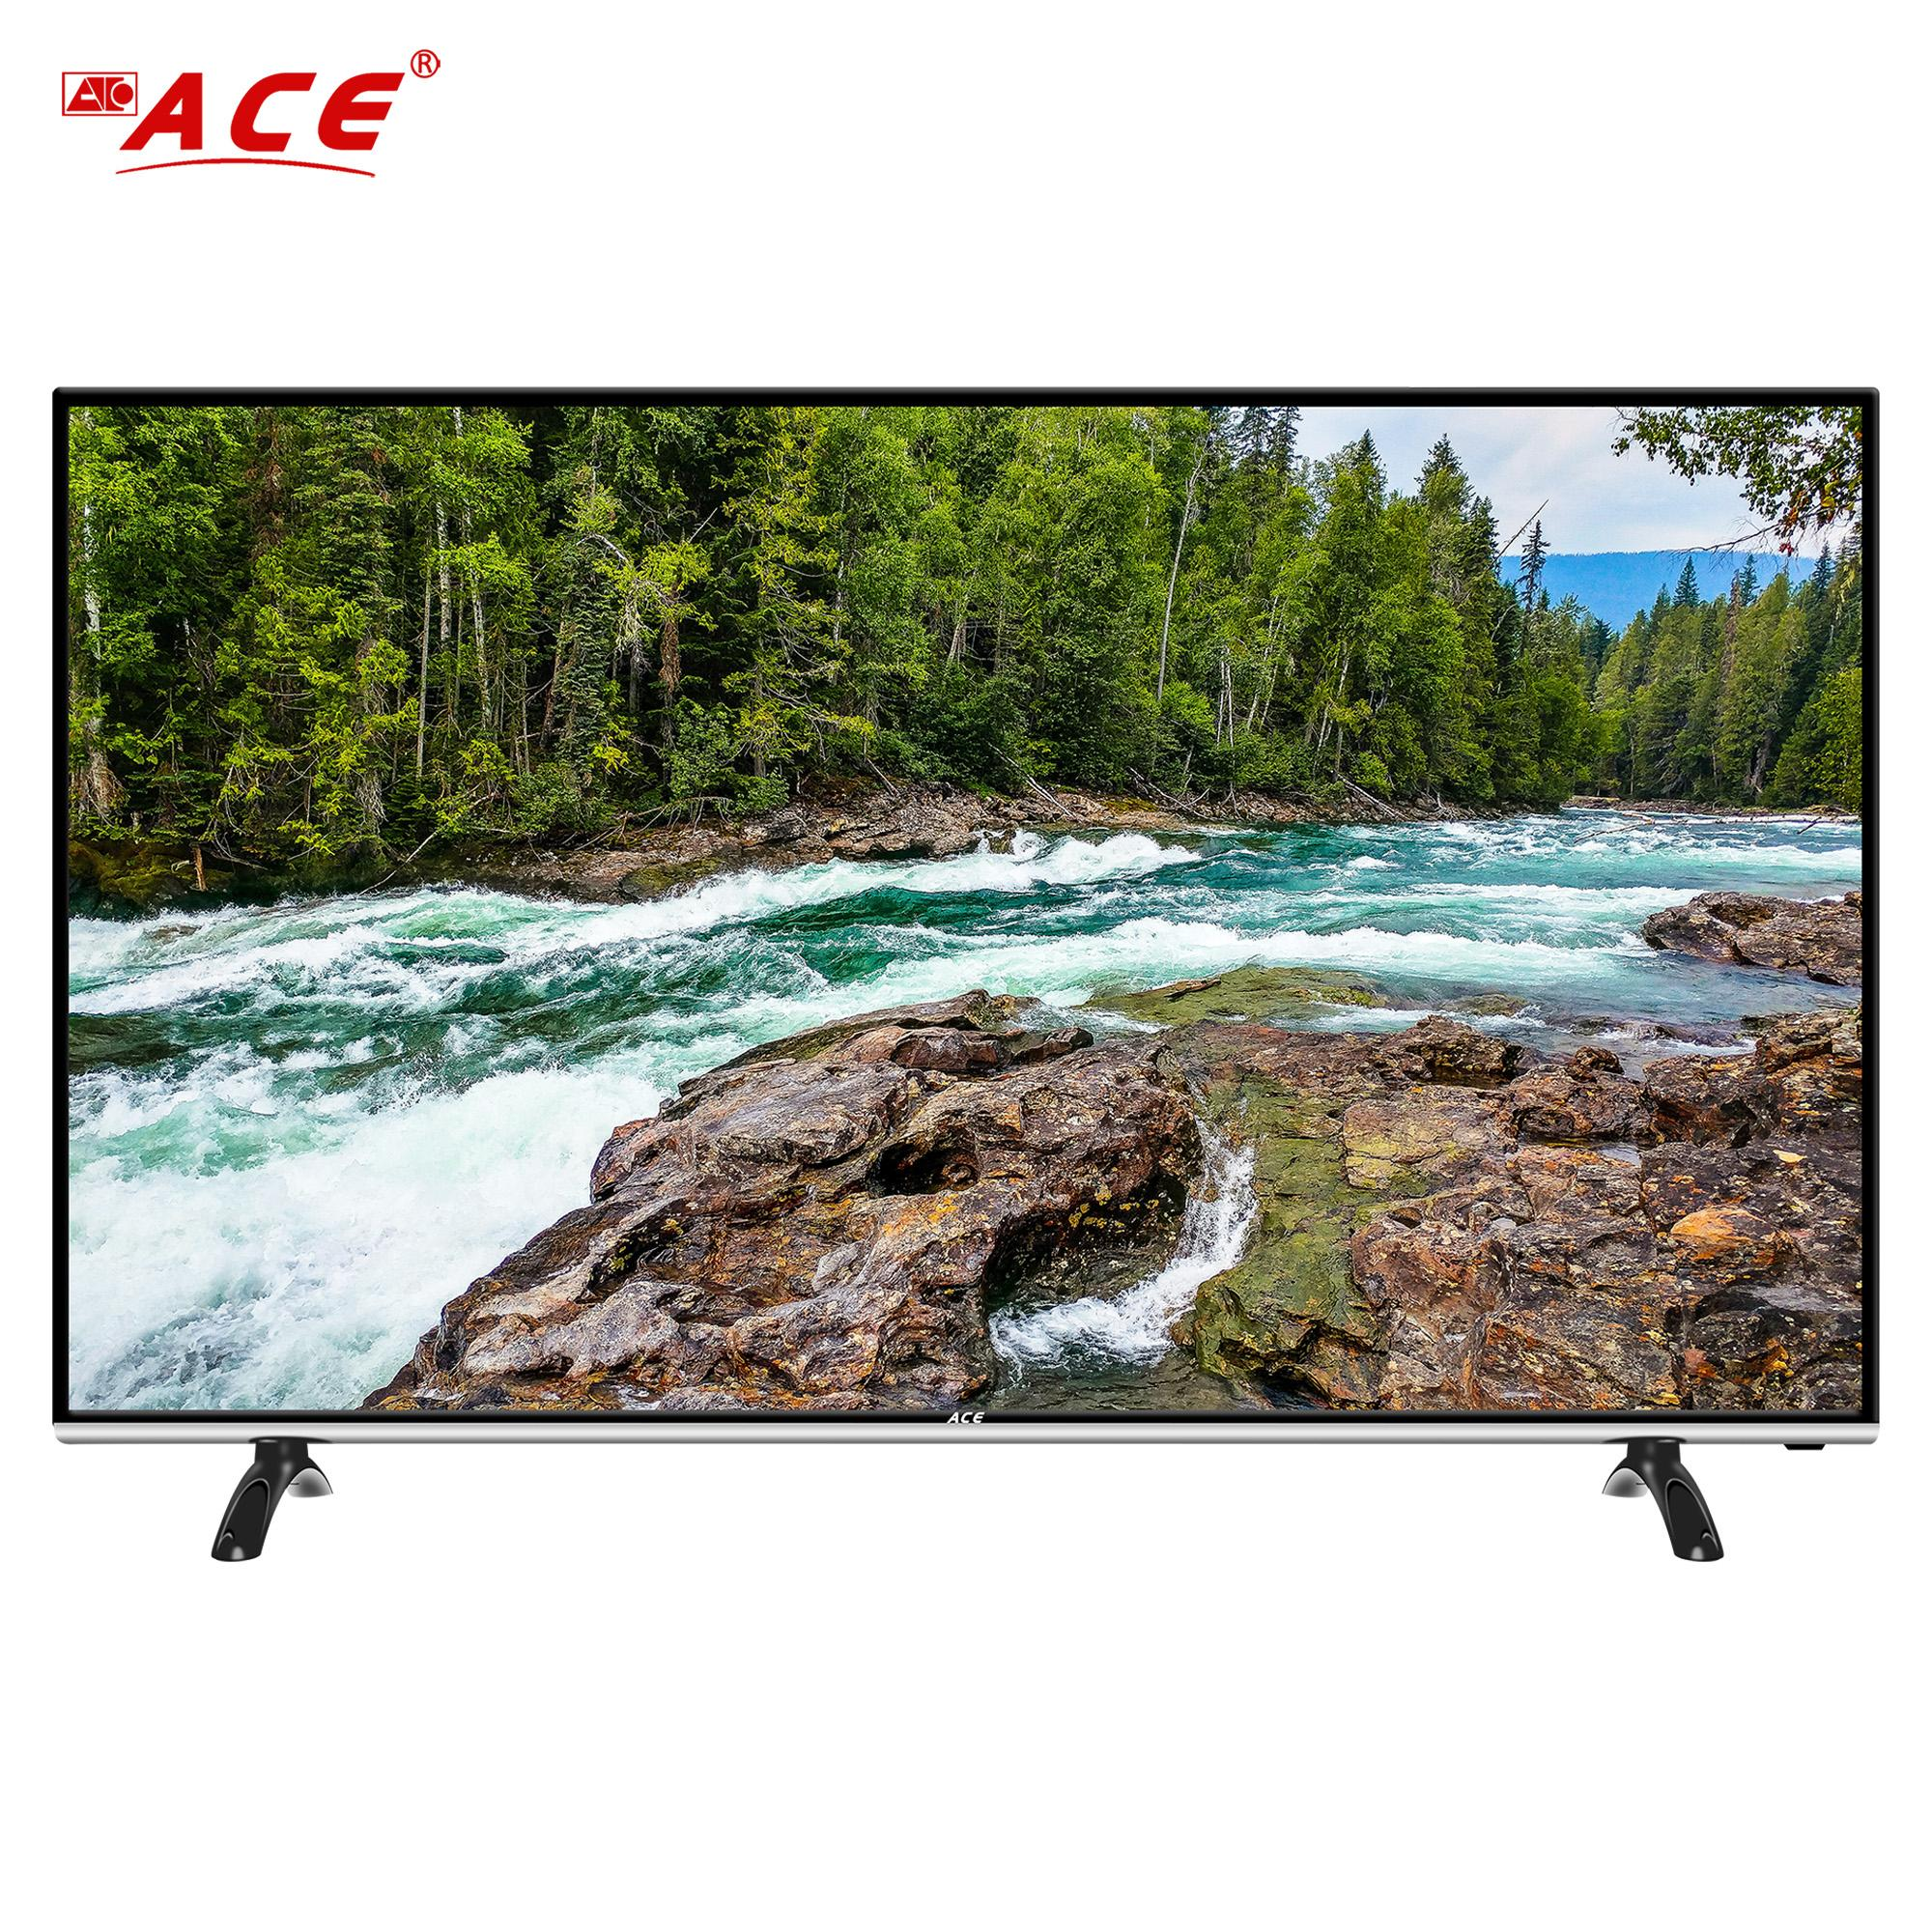 9999348630d1 LED TV for sale - LED Television prices, brands & specs in ...